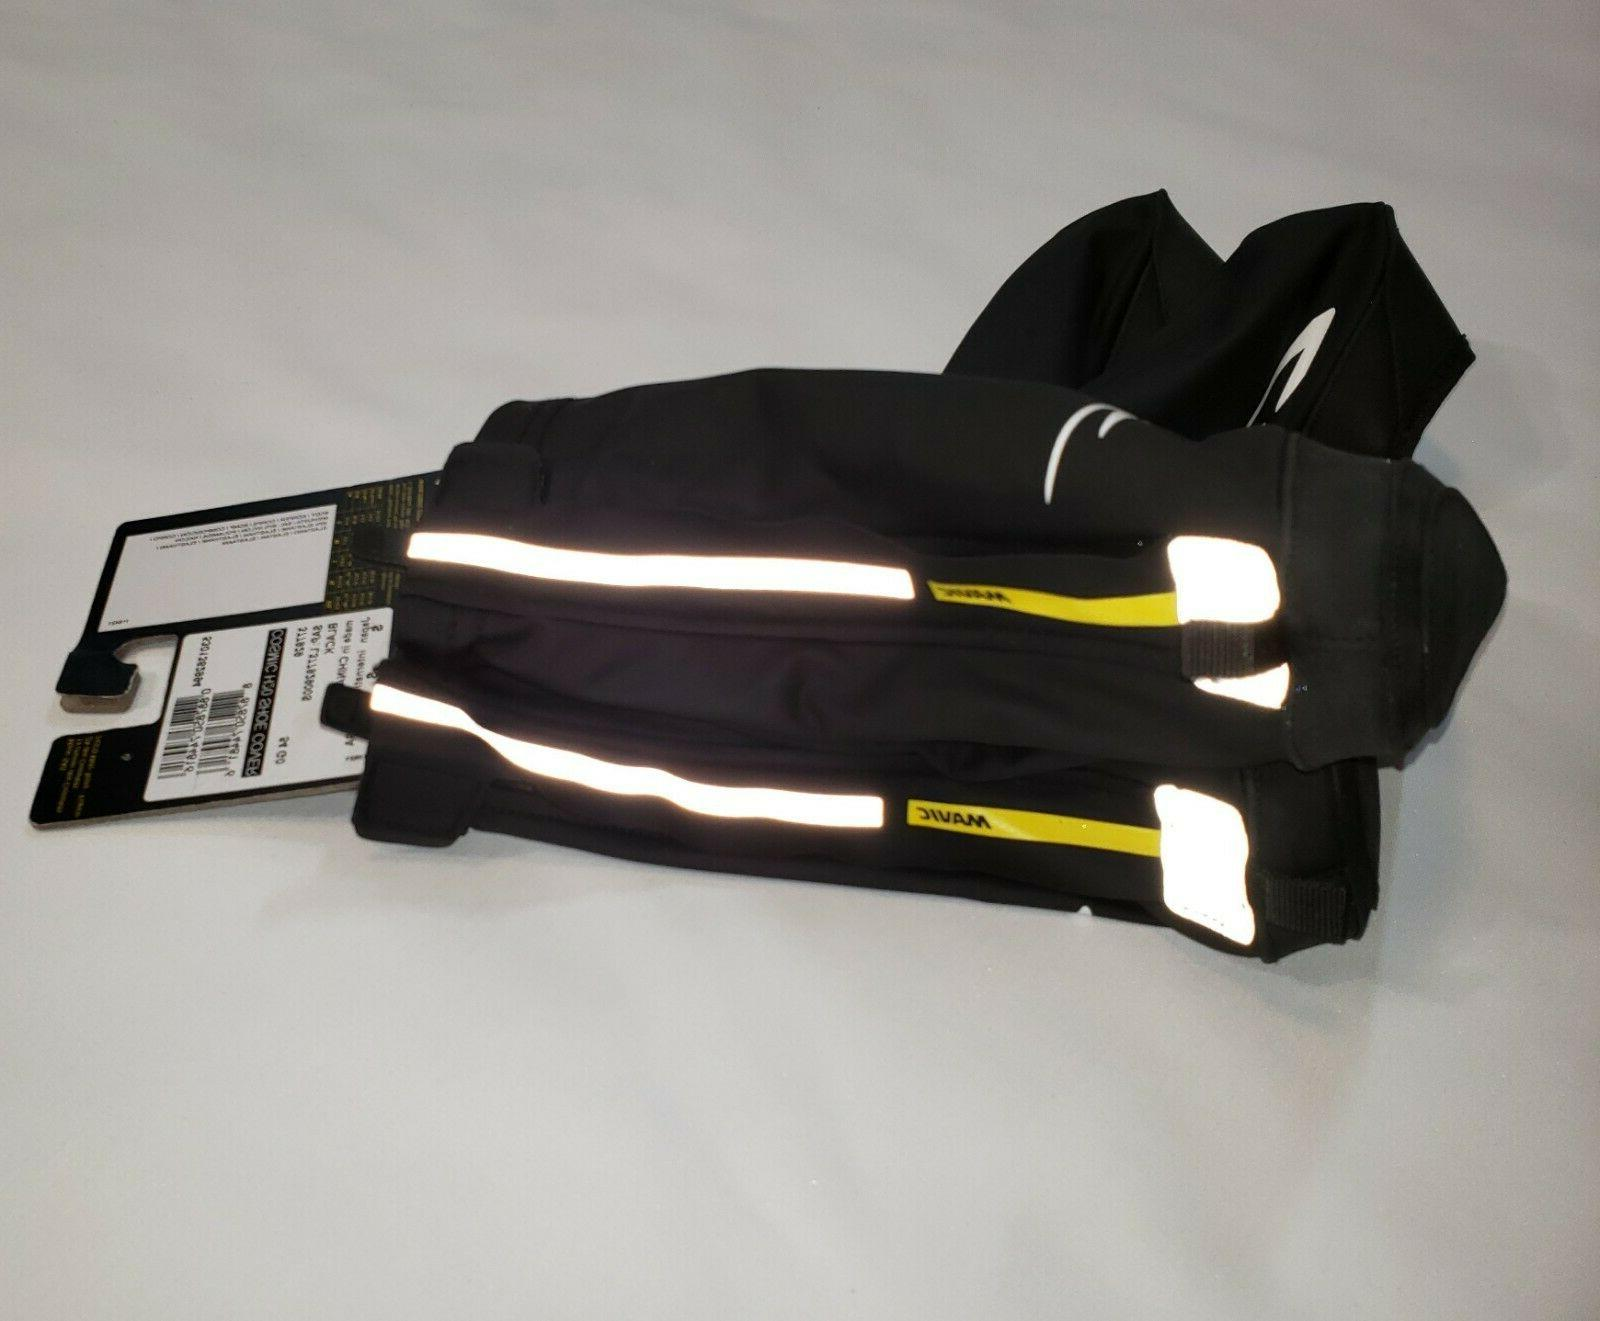 cosmic h20 shoe covers waterproof size small